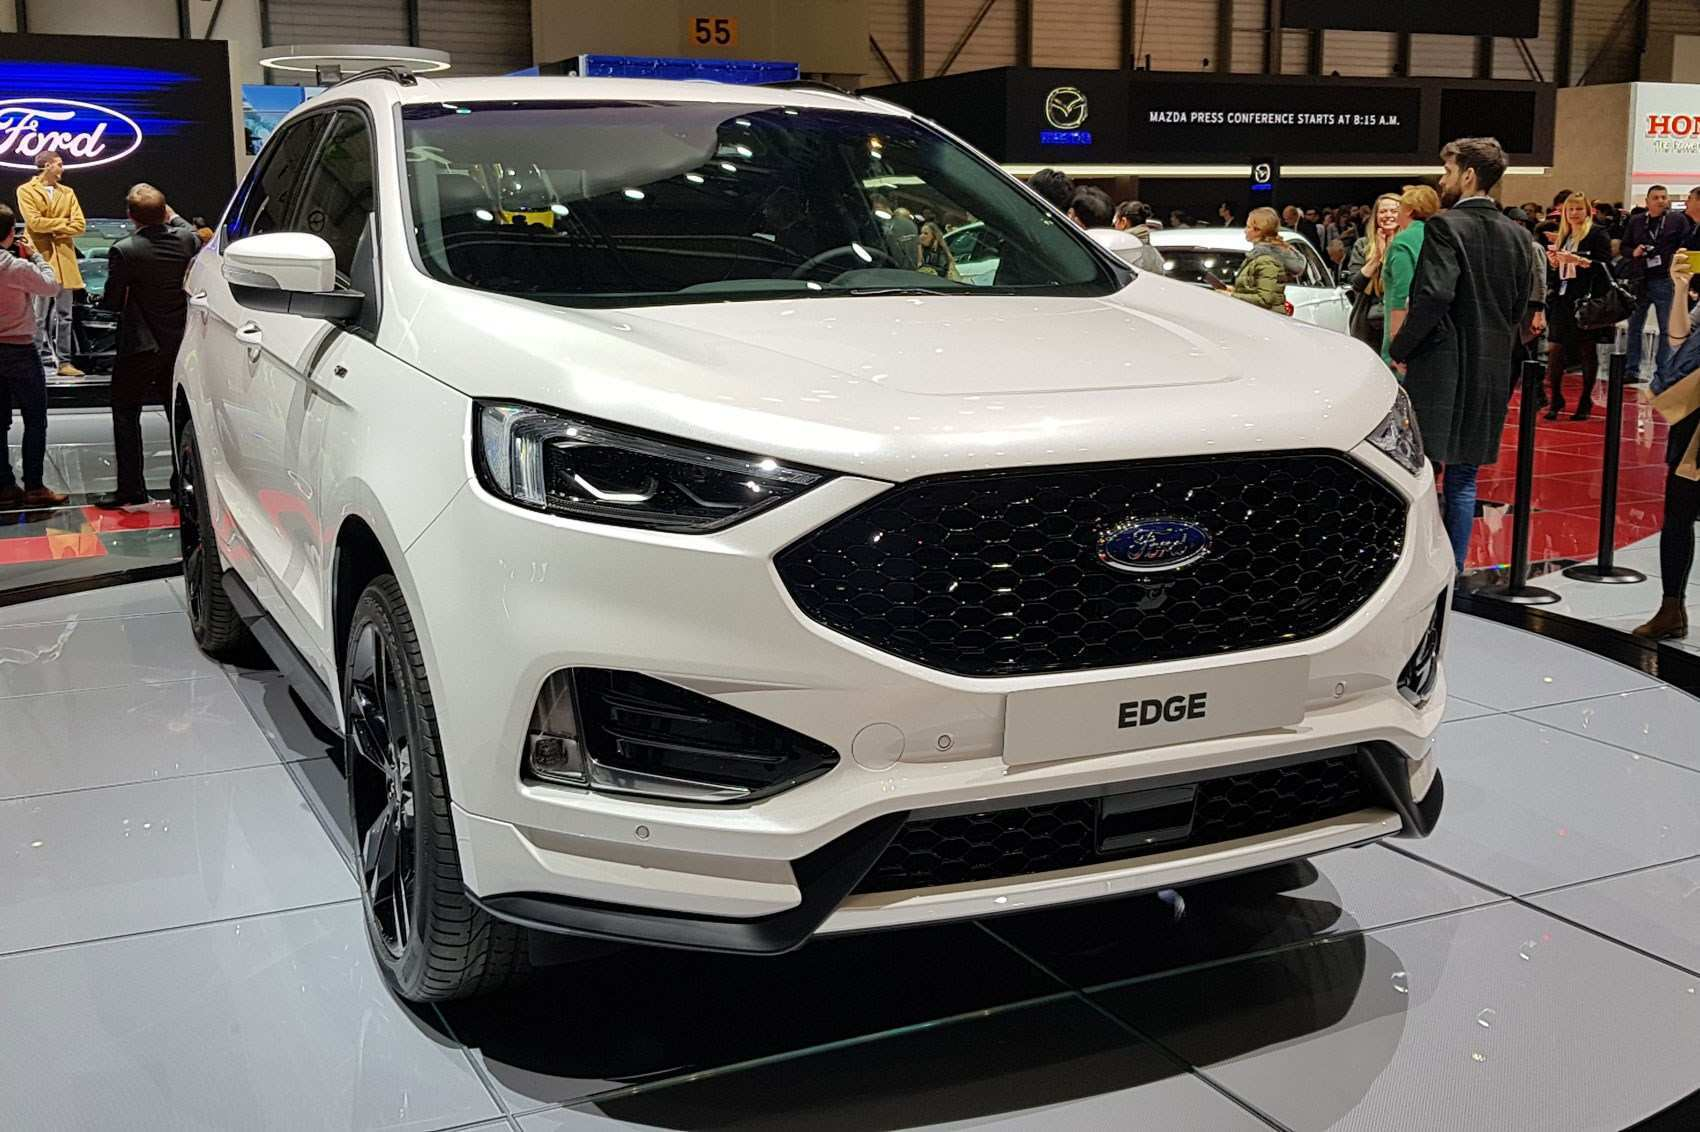 78 New Ford Edge New Design Style